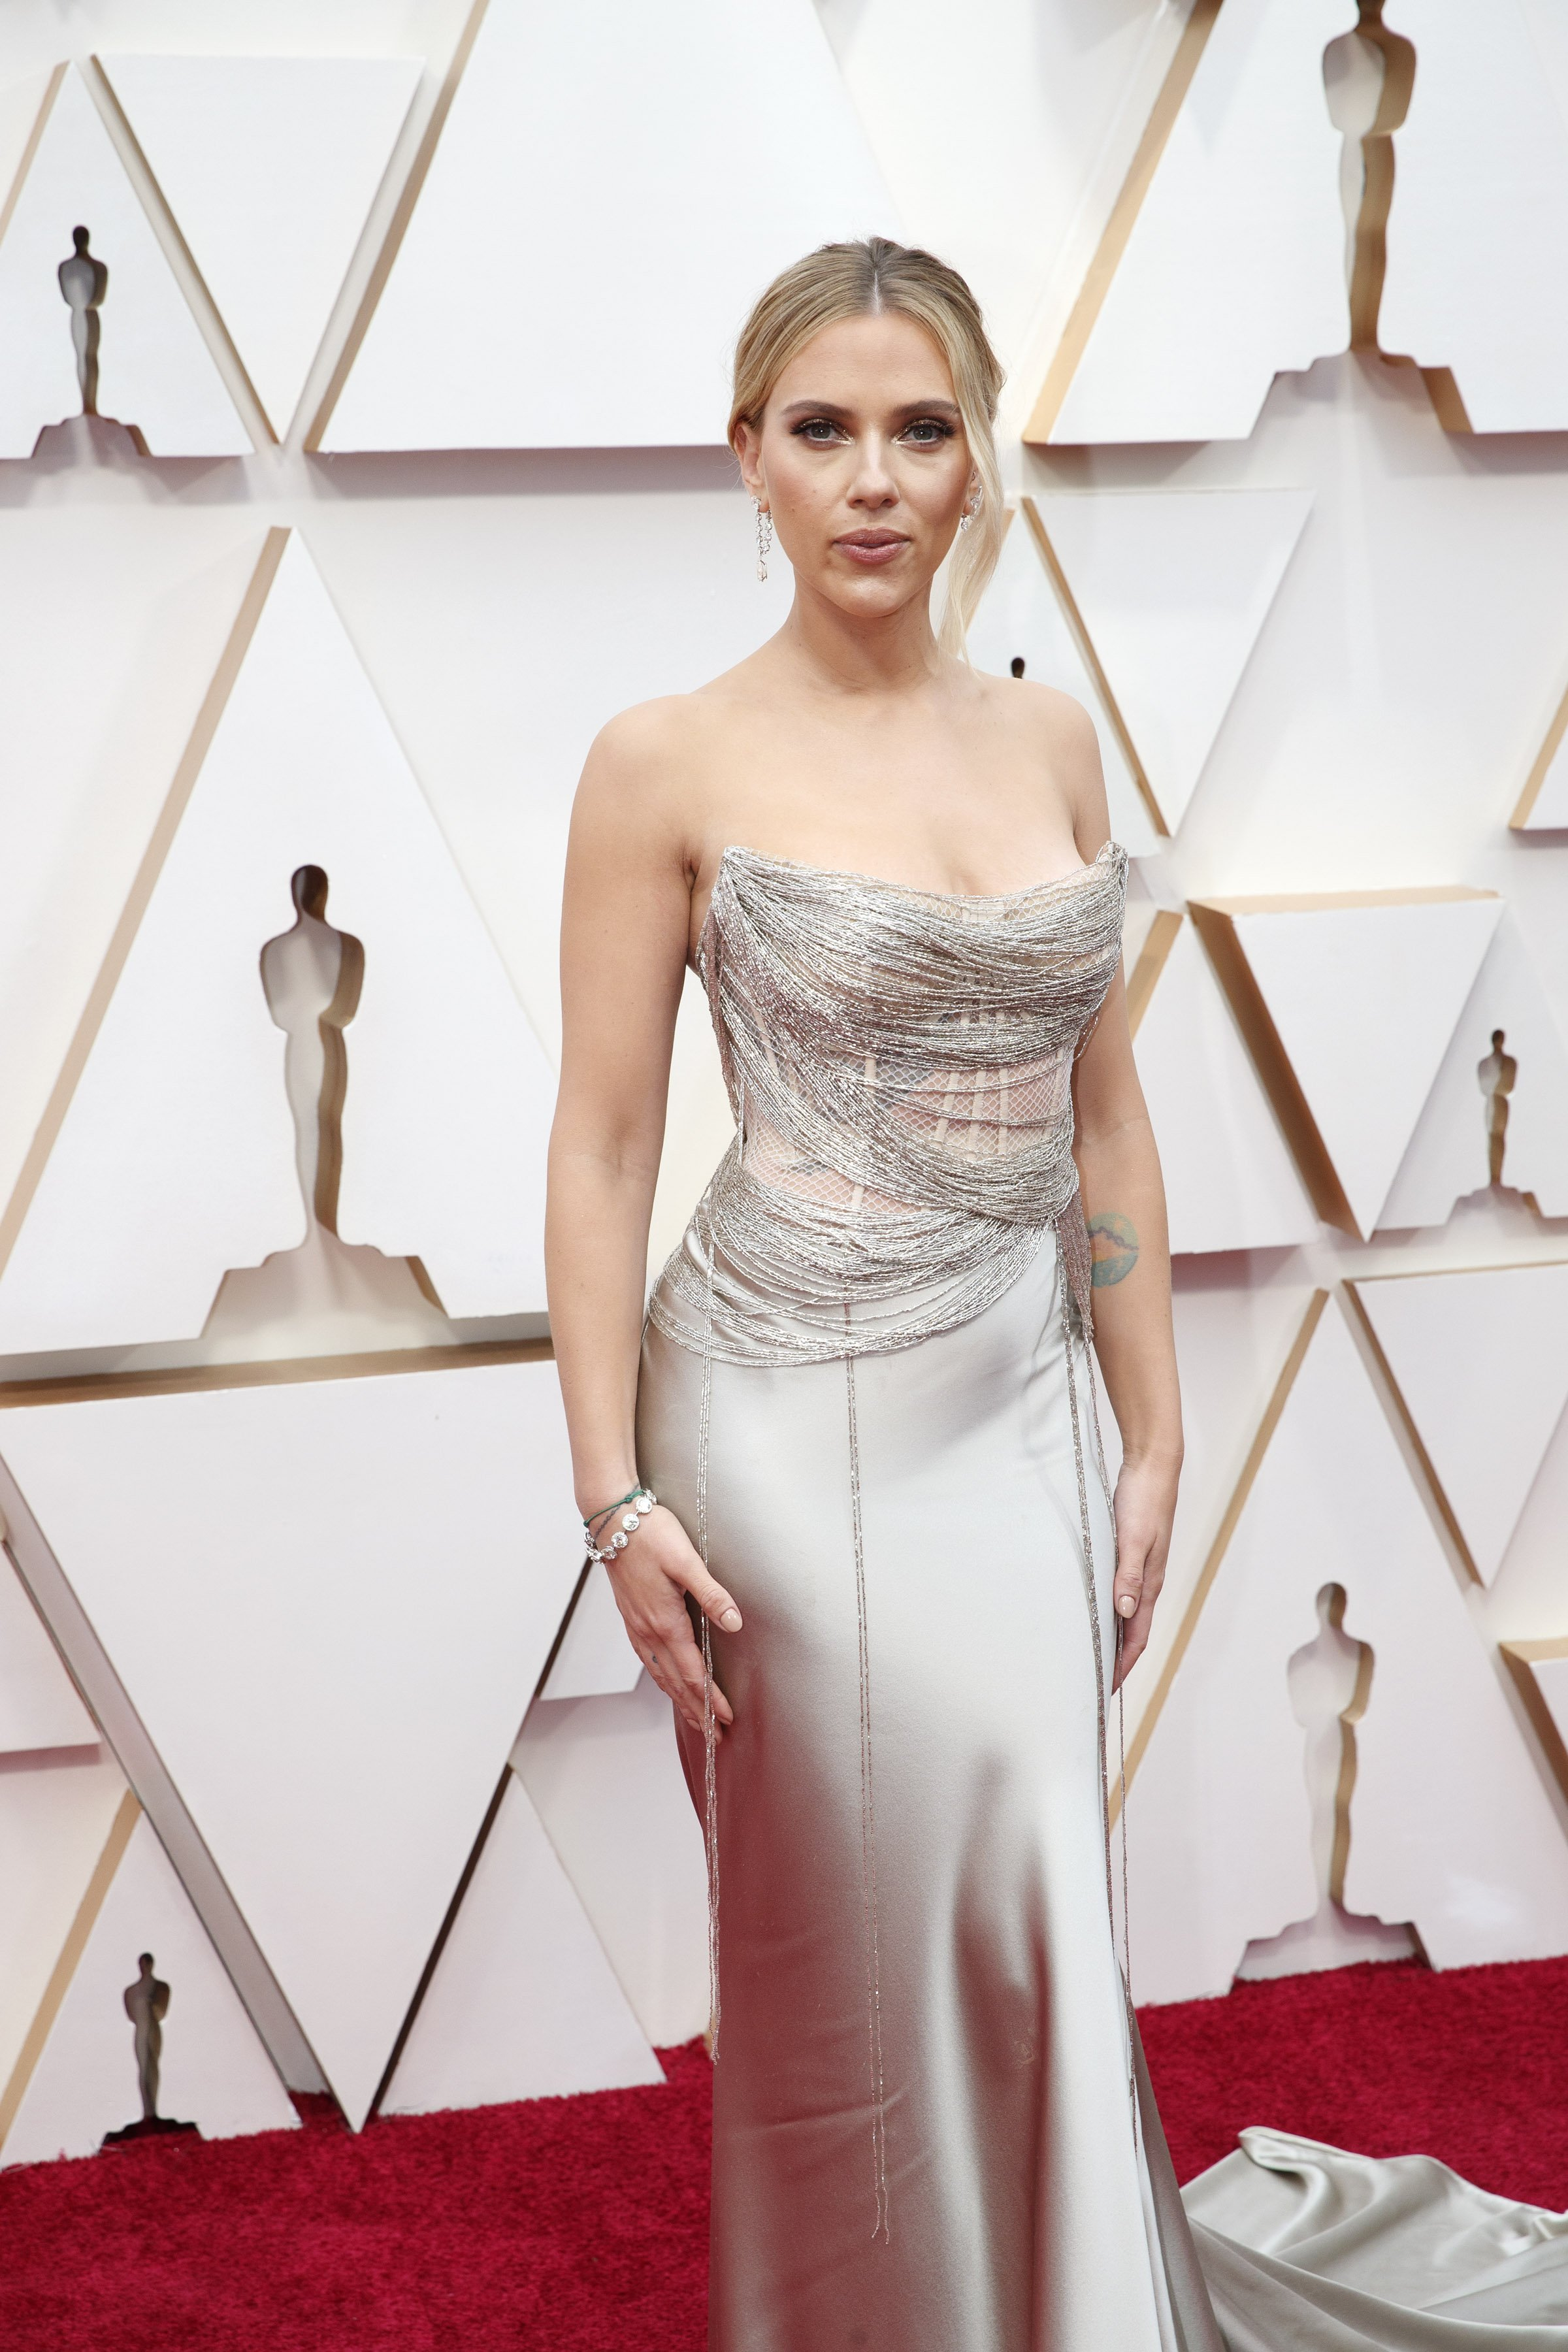 Scarlett Johansson aux Oscars le 09 février 2020 à Hollywood | Photo: Getty Images